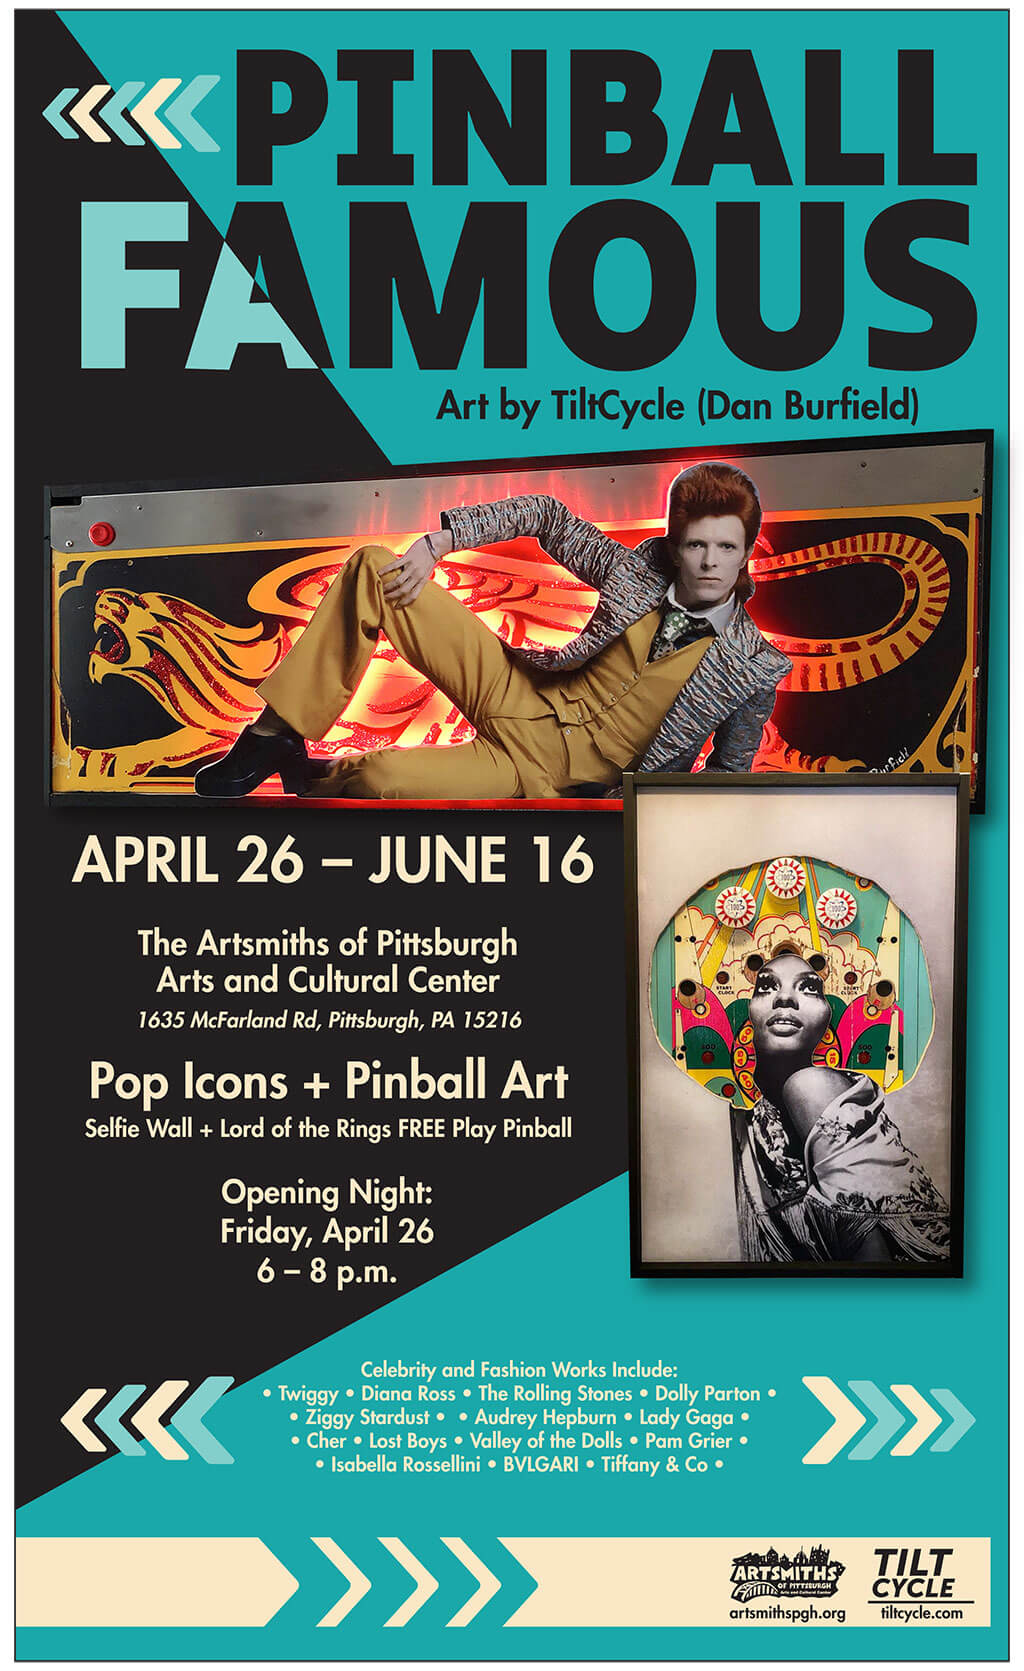 Pinball Famous - Artsmiths of Pittsburgh